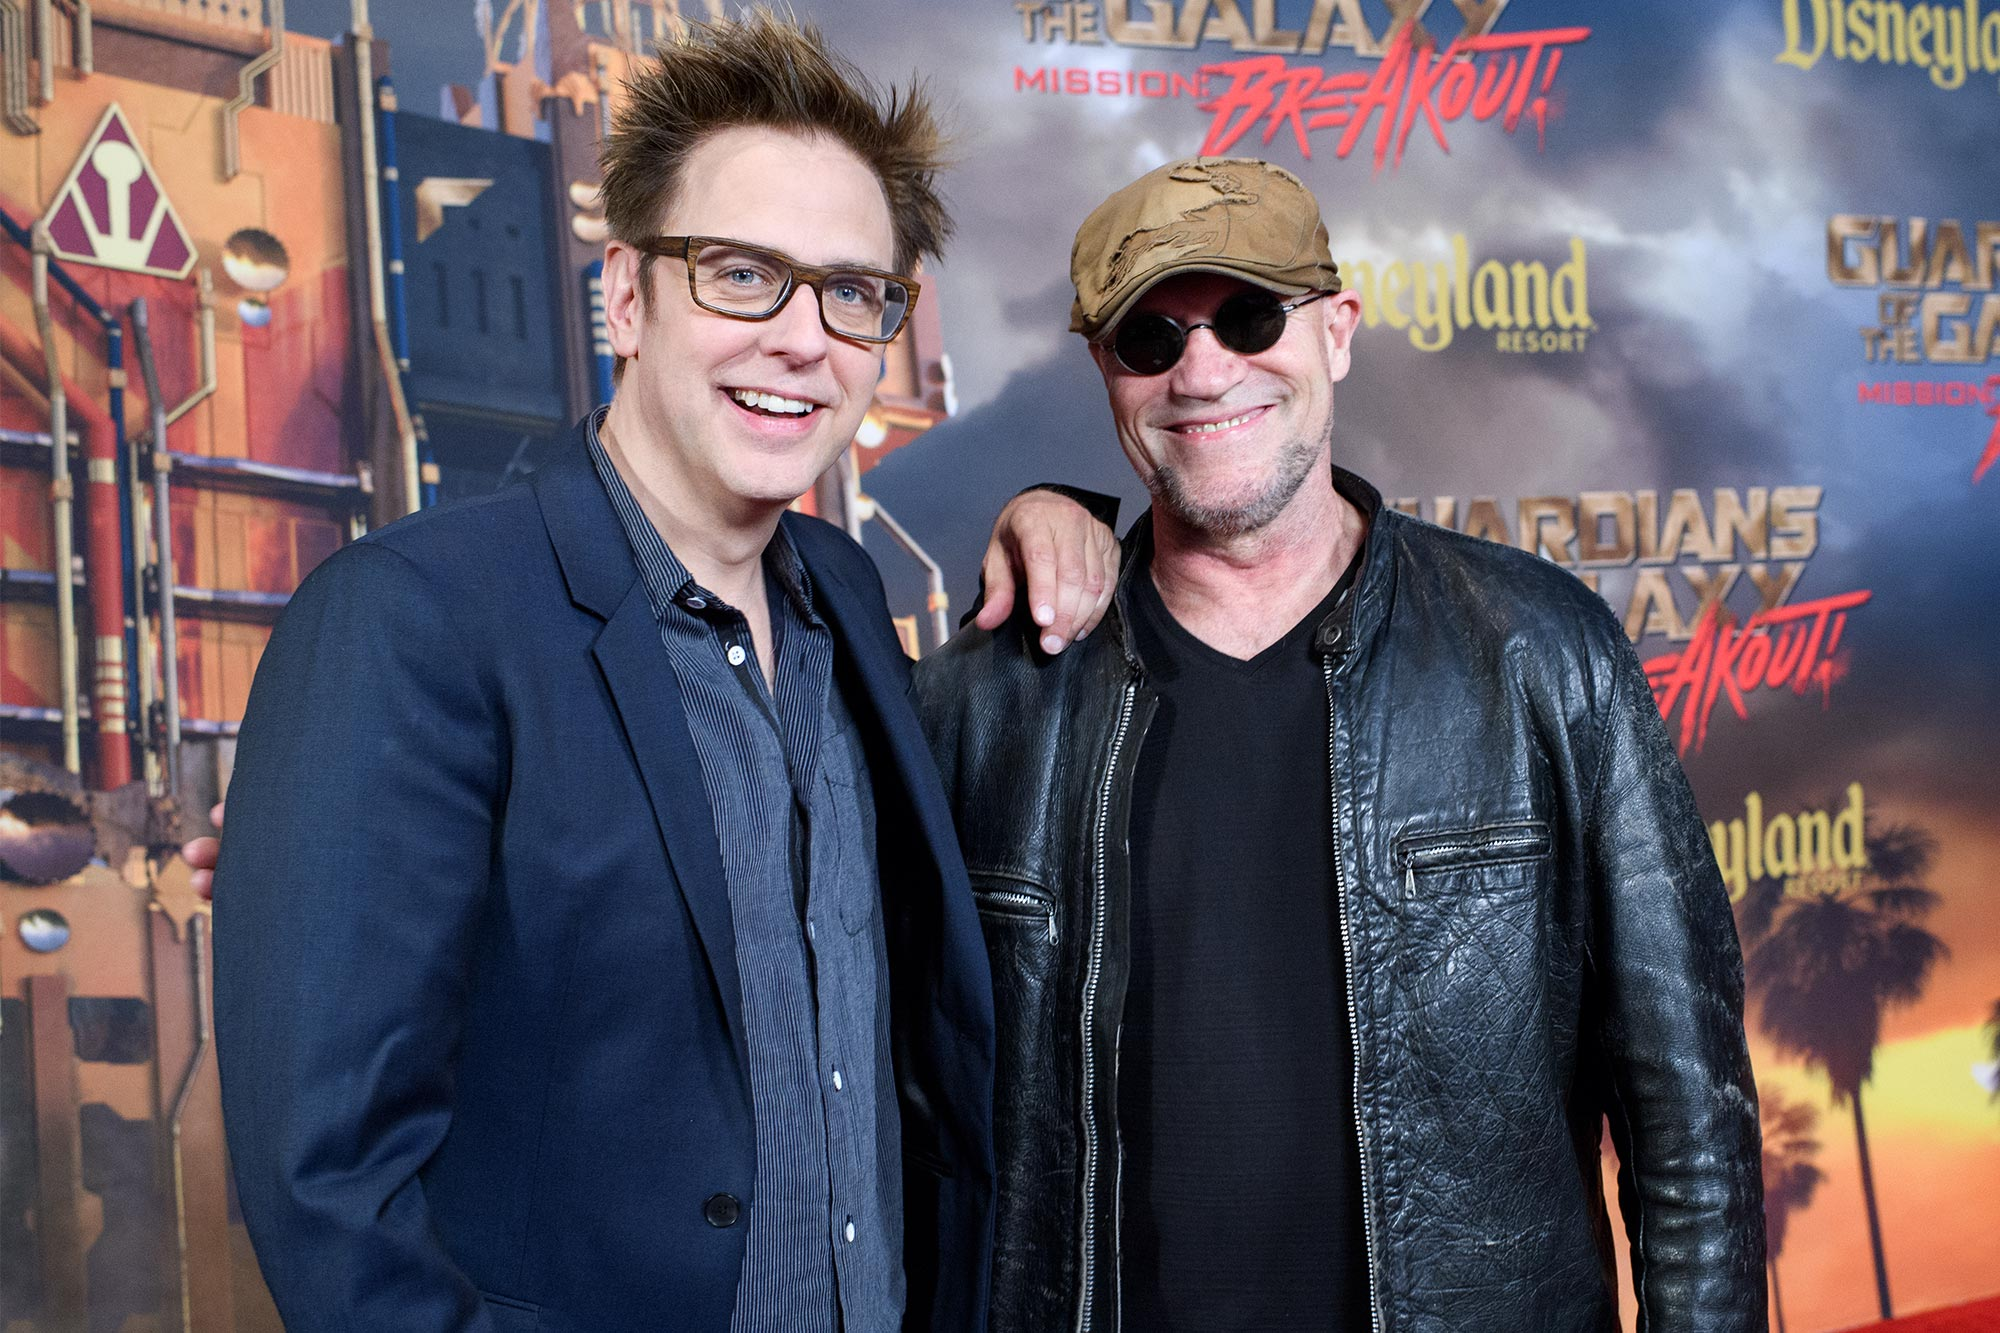 James Gunn and Michael Rooke